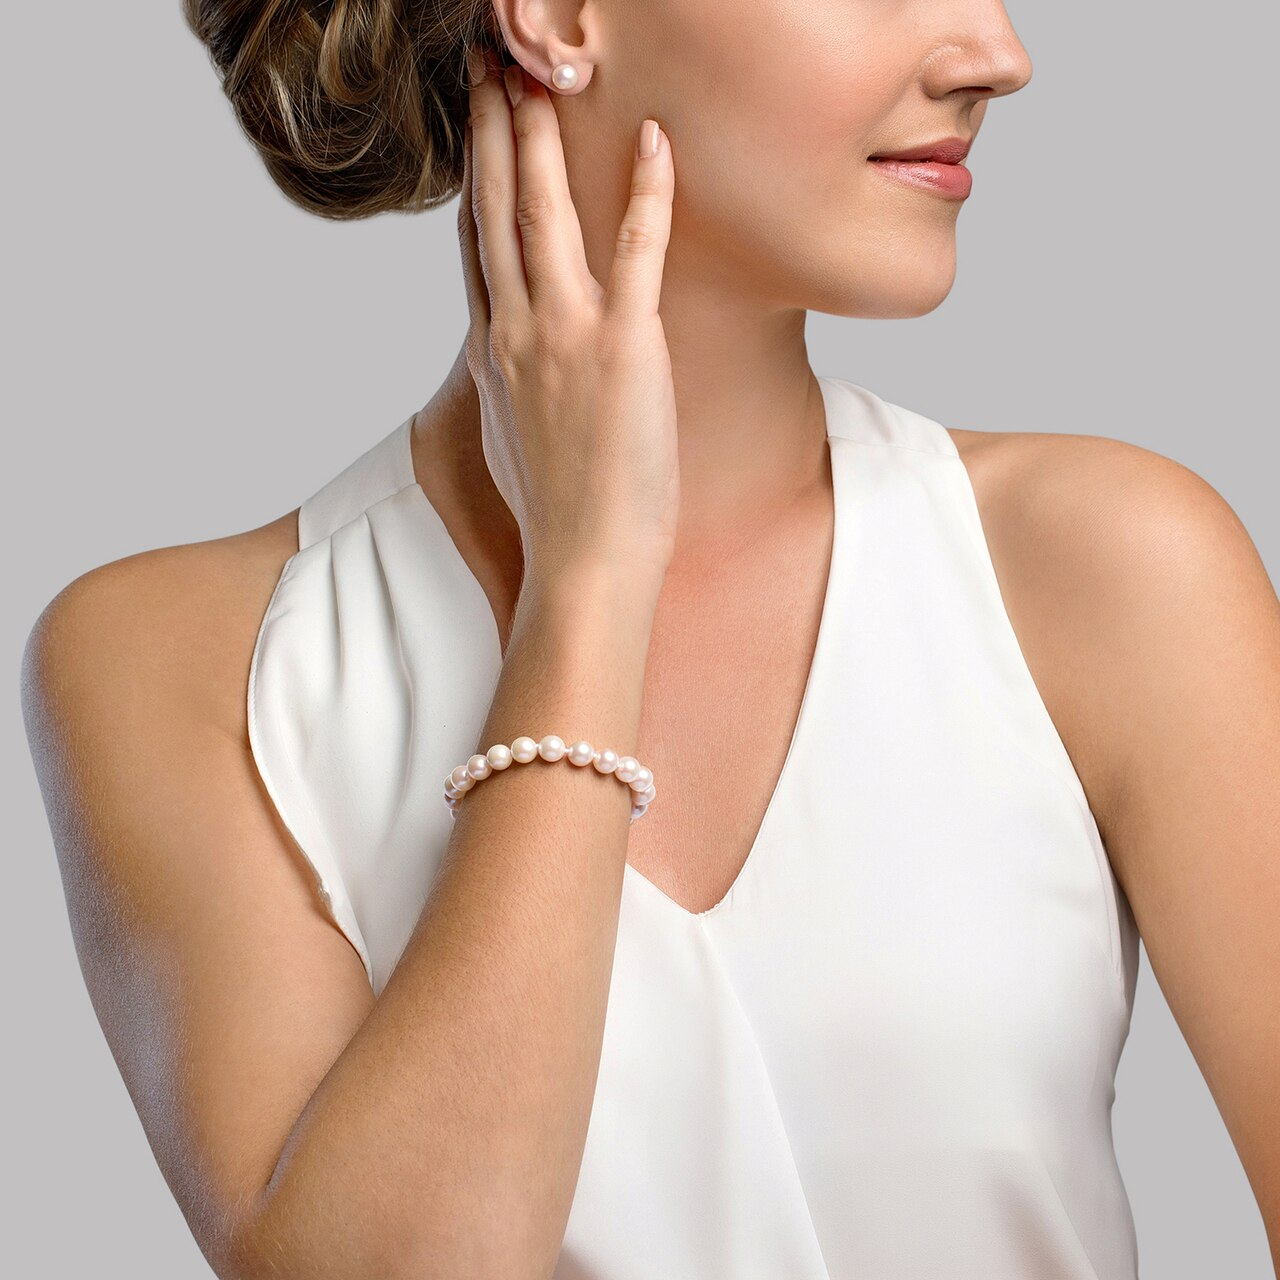 This elegant bracelet features 11.0-12.0mm White South Sea pearls, handpicked for their luminous luster